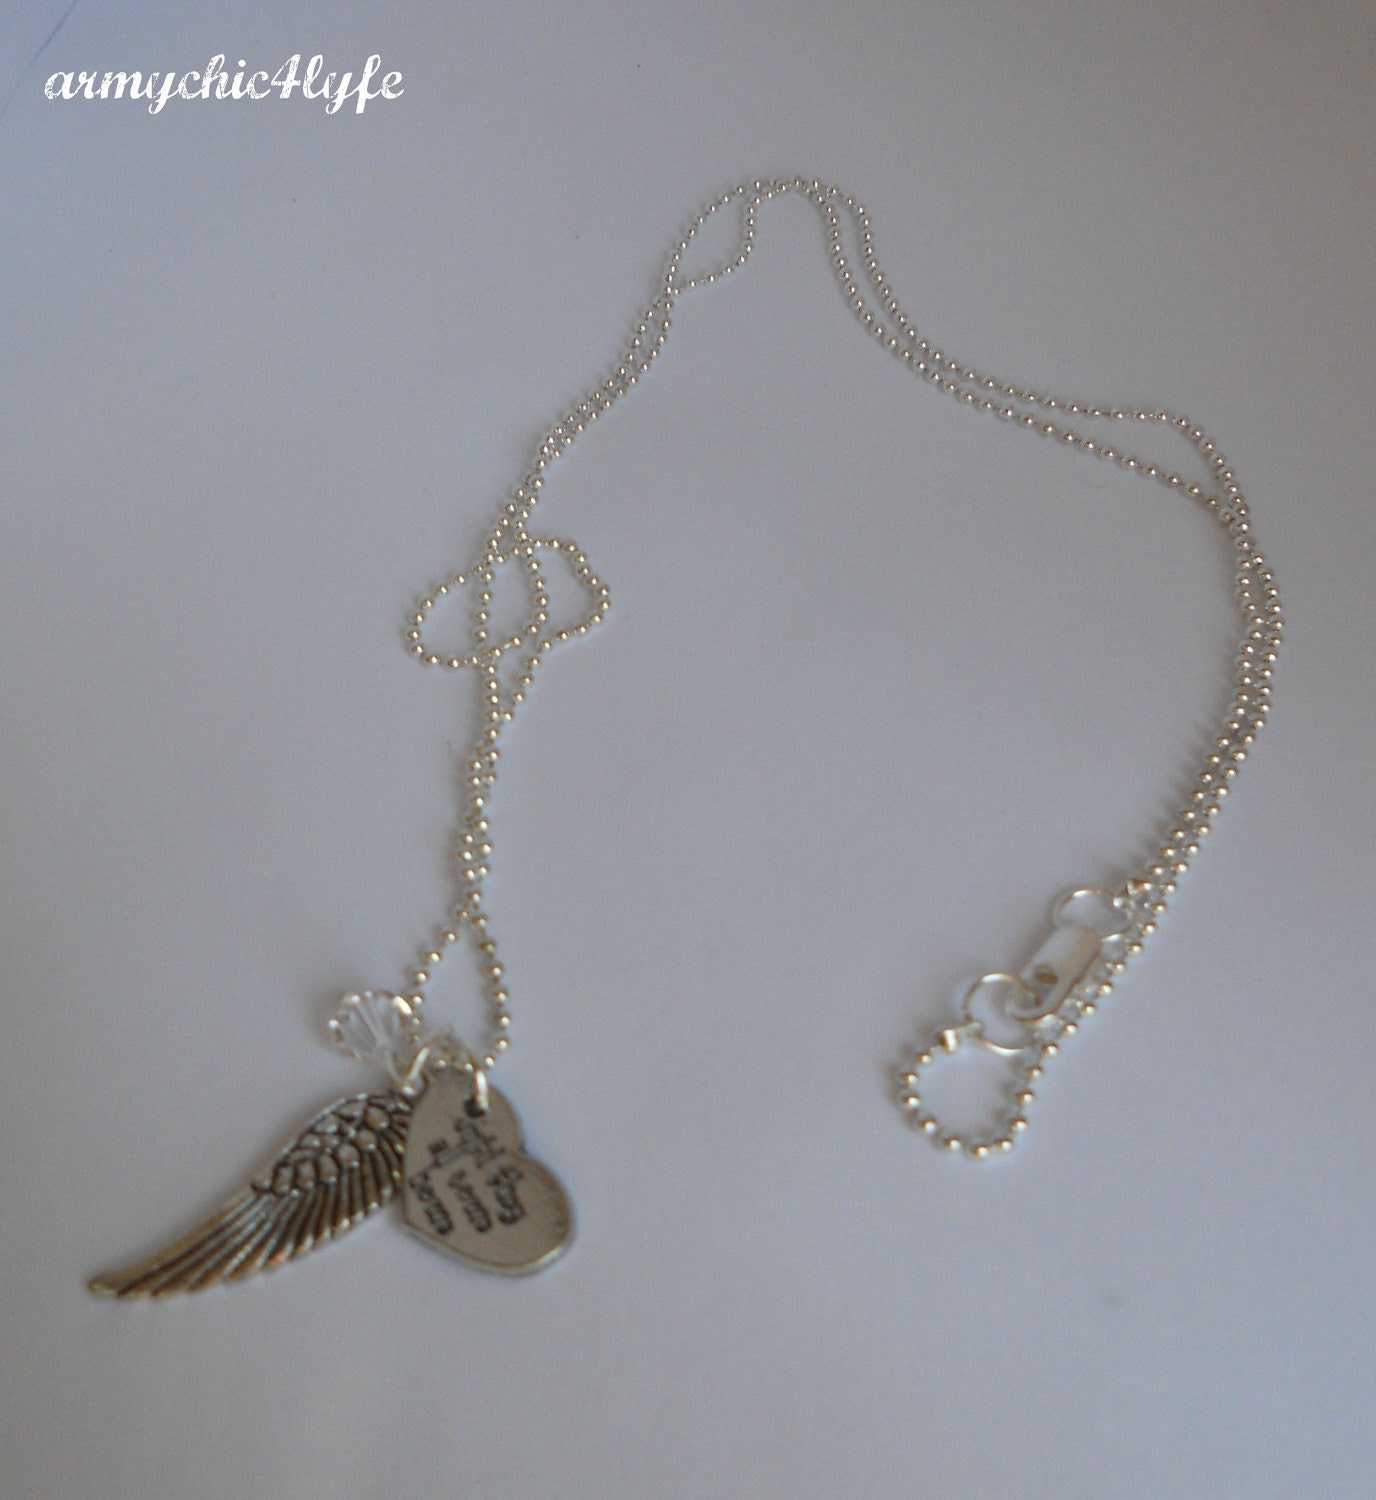 Until They All Come Home Wing necklace with crystallized swarovski